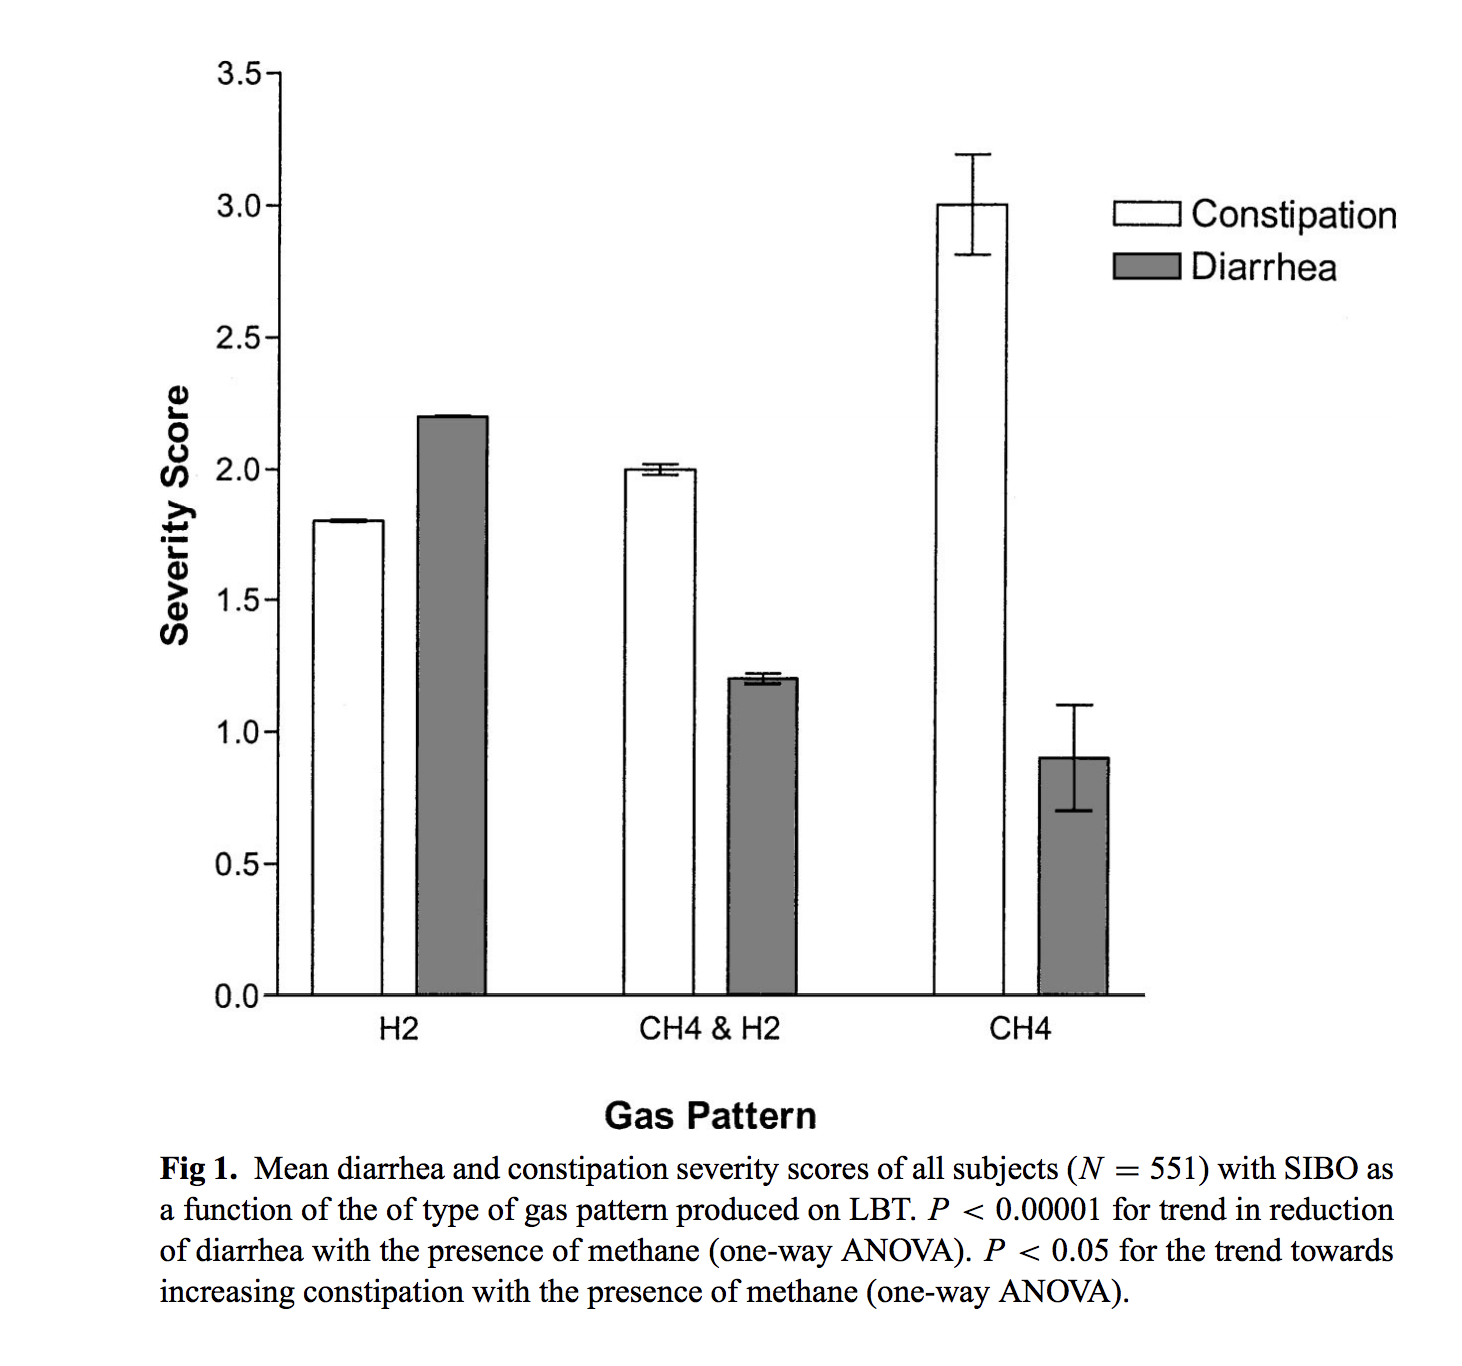 Image taken from: Methane Production During Lactulose Breath Test Is Associated with Gastrointestinal Disease Presentation showing the prevalence of constipation and methane production in patients with SIBO.